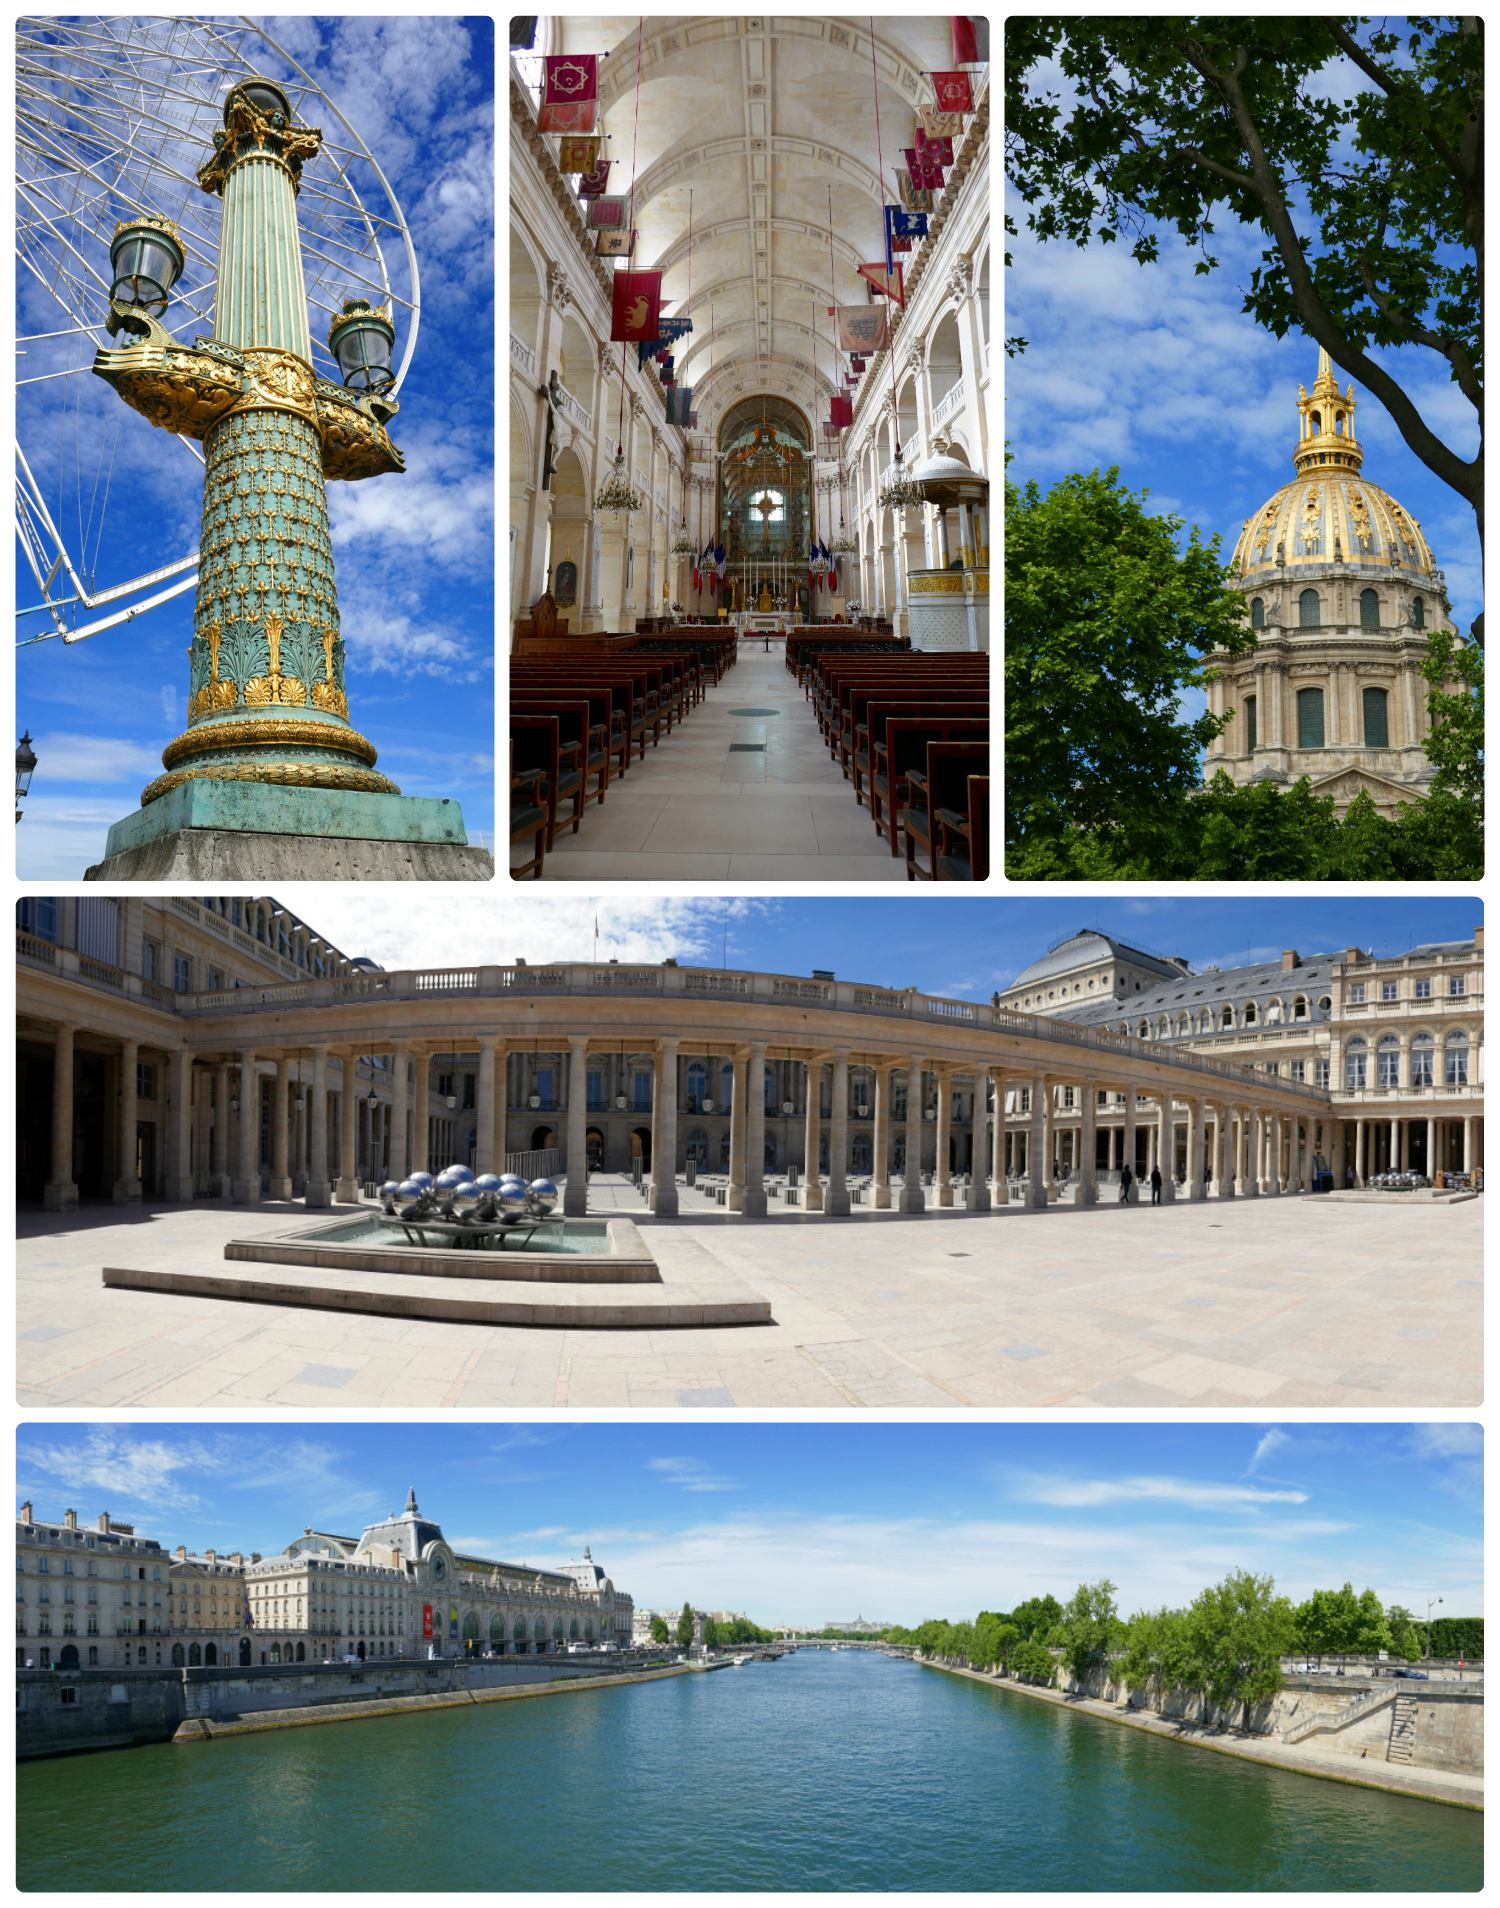 Clockwise (from the top): Paris is beautiful down to the street lamps - this was in Place de la Concorde (Concord Square), the chapel in the Palais National des Invalides, the dome on the Museum of Contemporary History, the courtyard of Le Palais Royal, view of Musée d'Orsay from the Pont Royal.